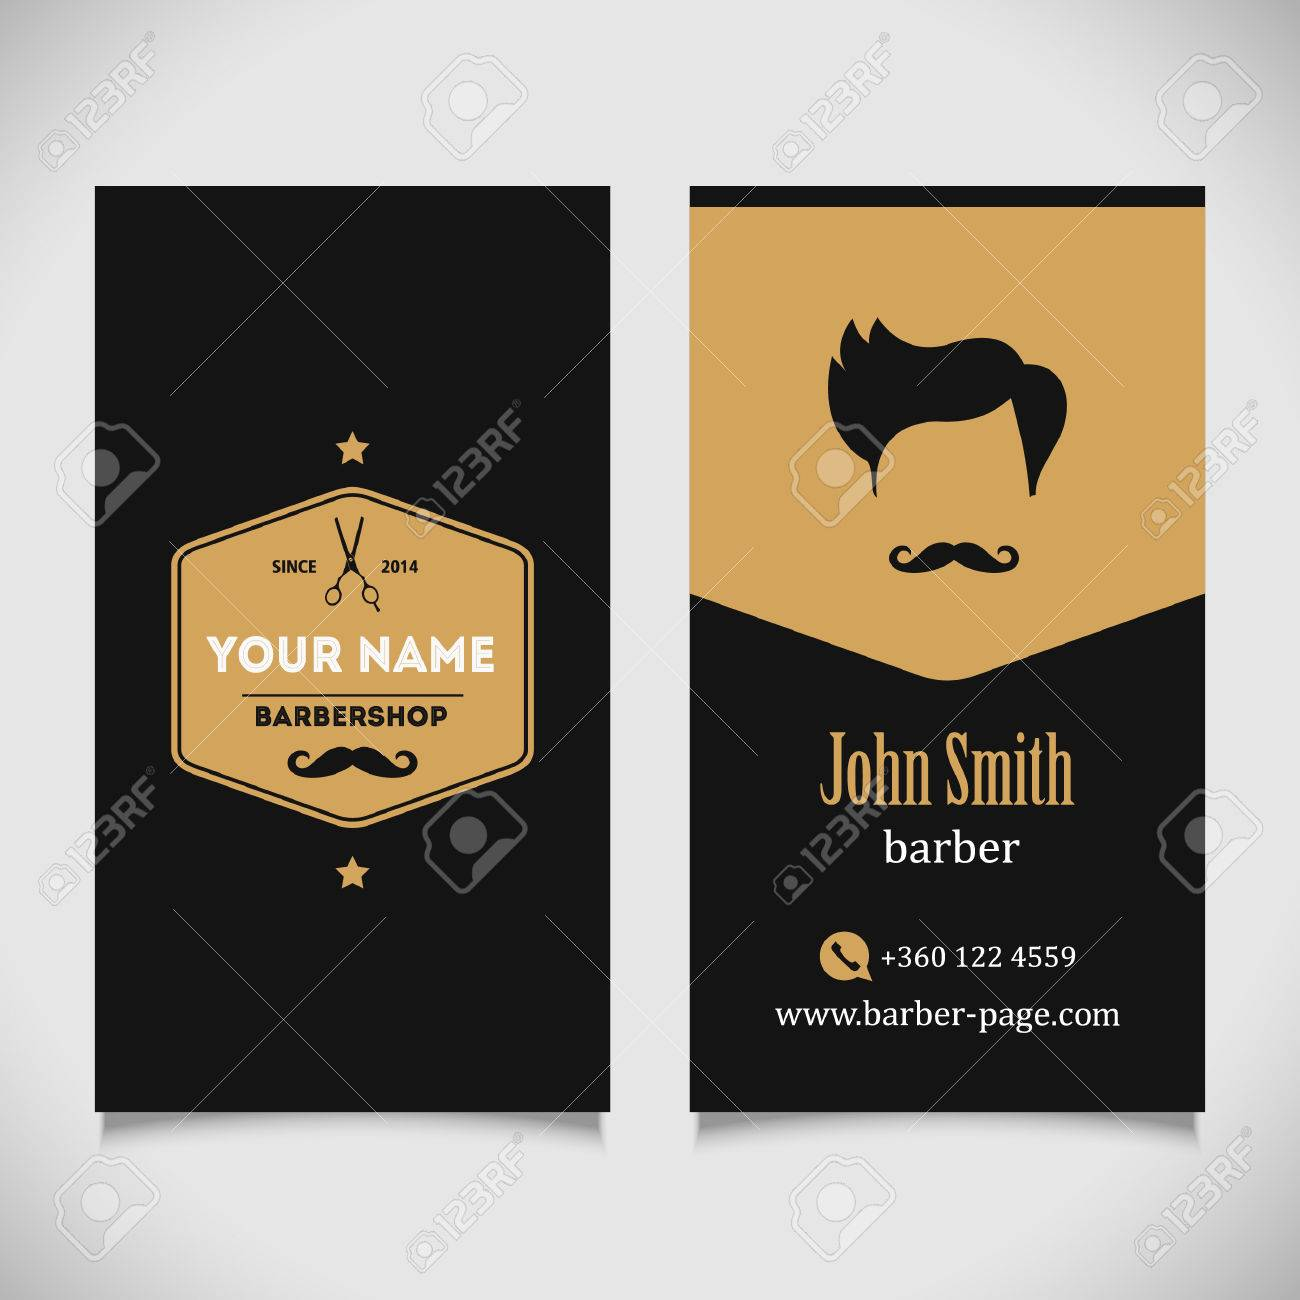 20 barber business cards free psd eps ai indesign word pdf barber hair salon barber shop business card design template royalty free barber shop business card templates cheaphphosting Images